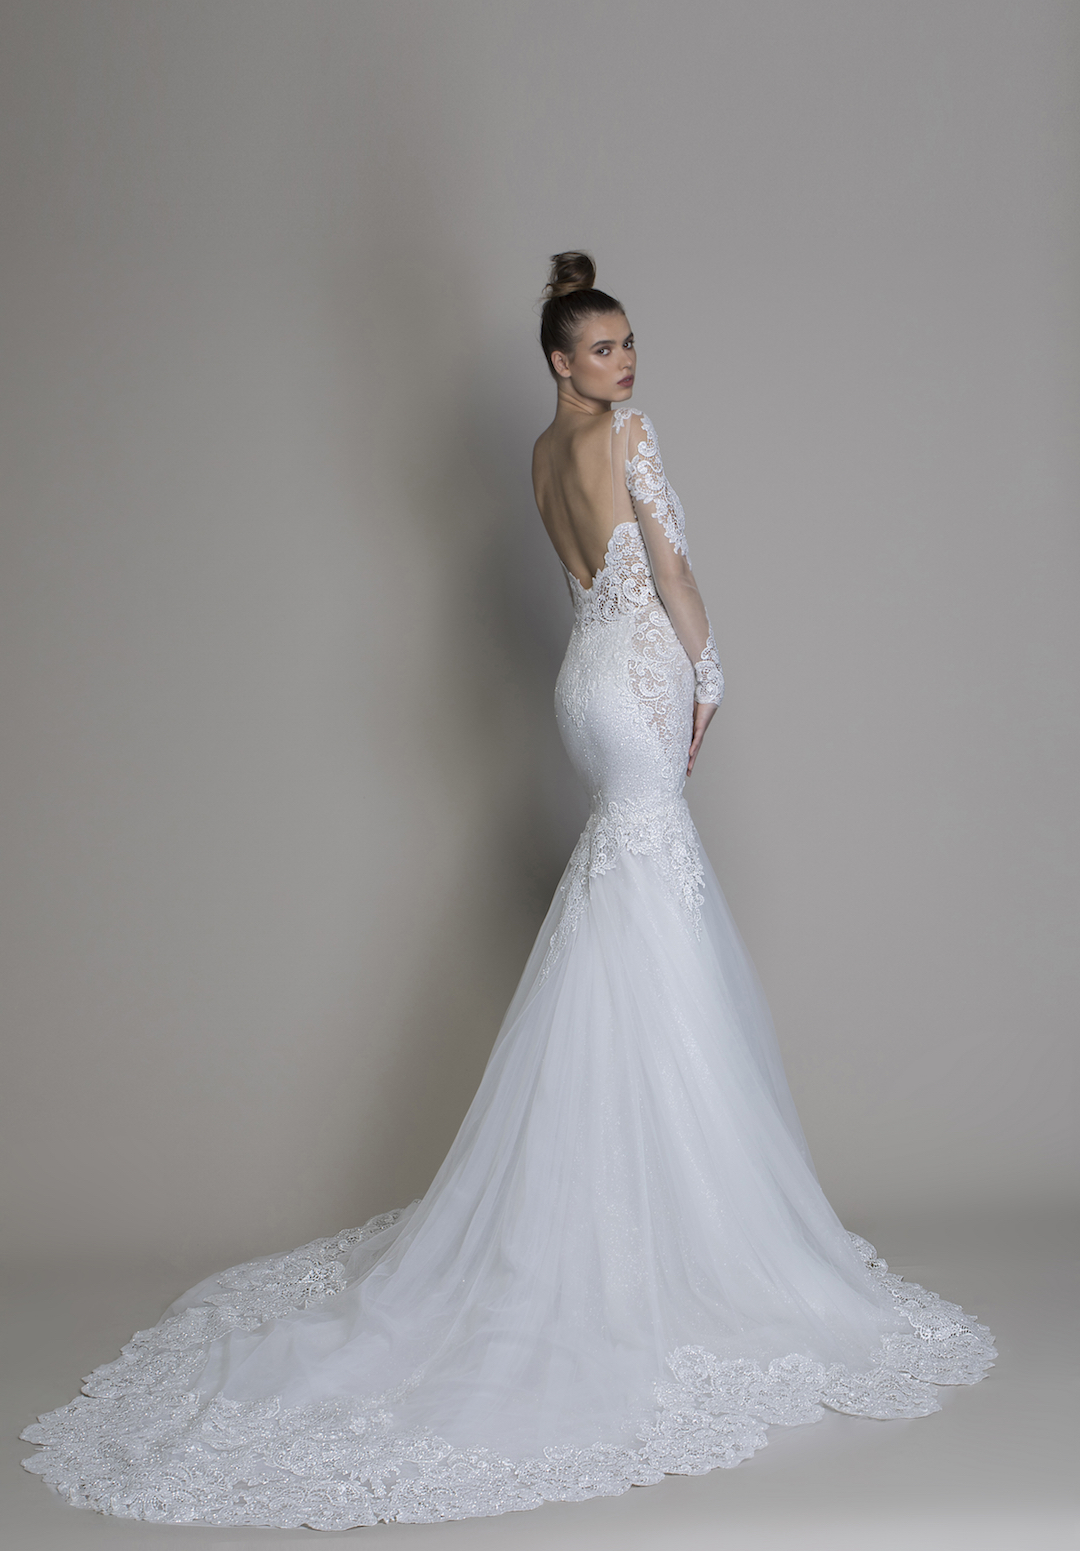 Pnina Tornai's new LOVE 2020 Collection is out! This is style 14766